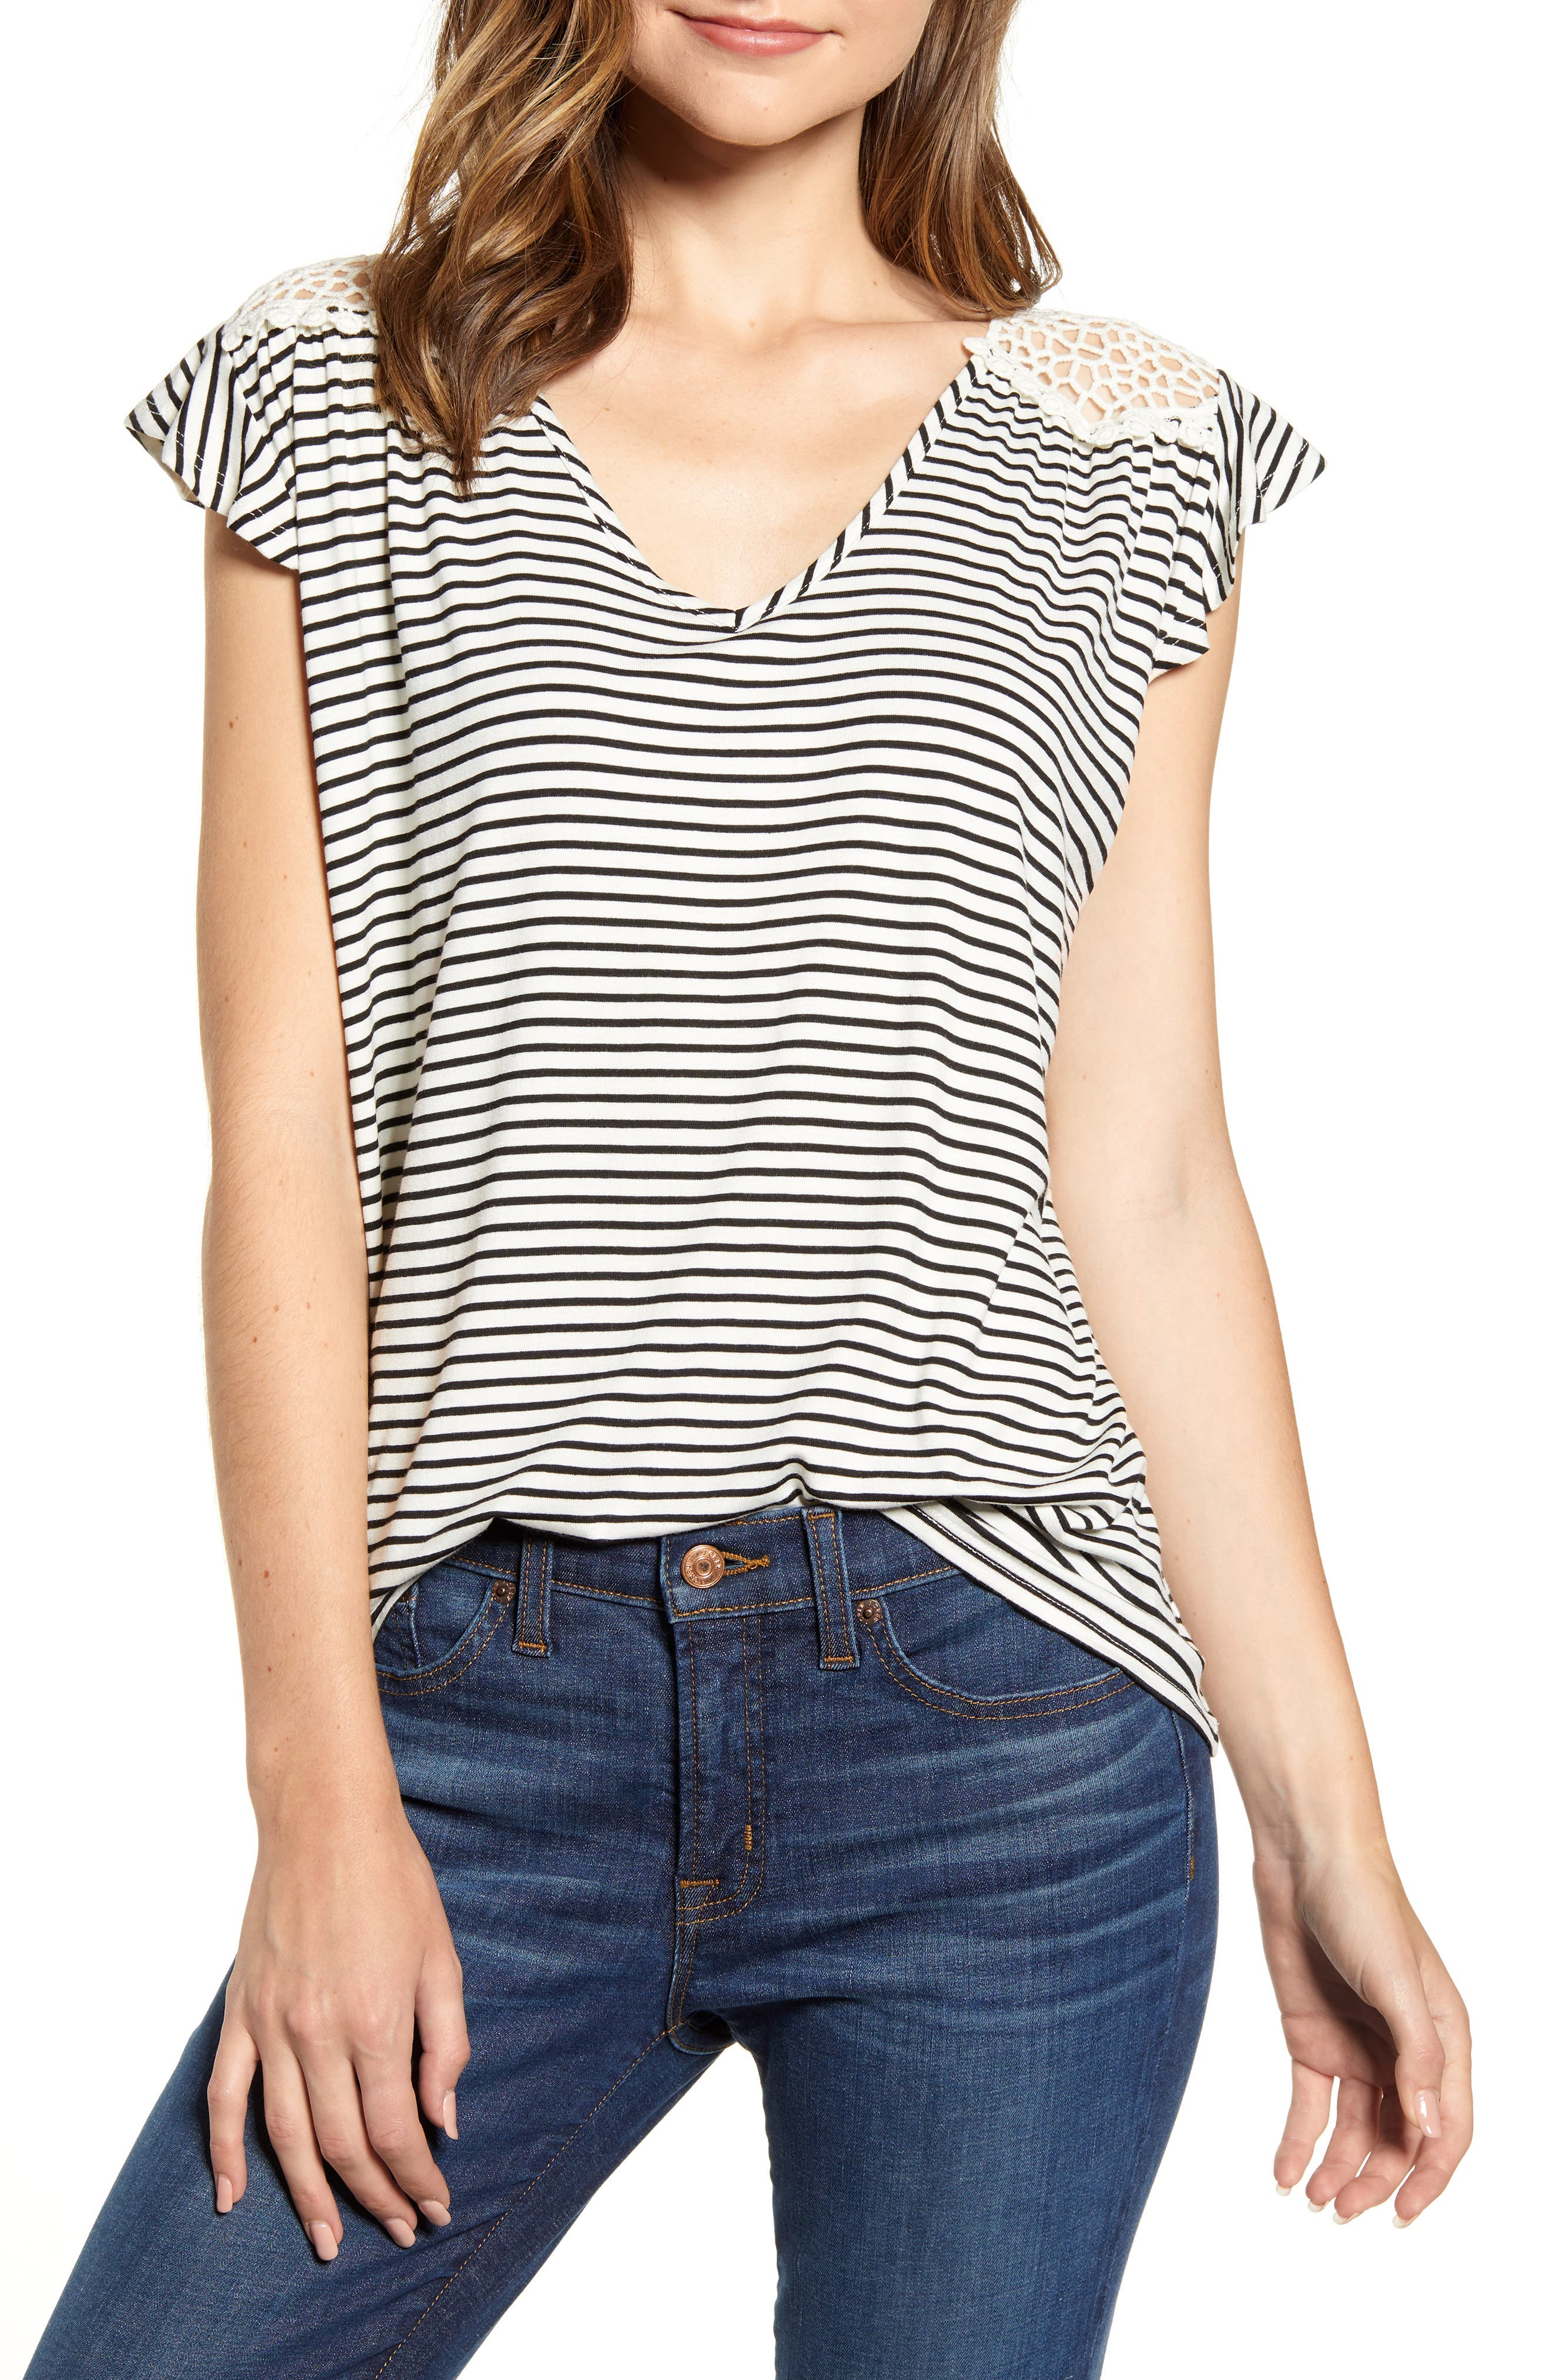 This cleverly striped V-neck top is styled in a flowy silhouette with an airy crochet back. Style Name: Loveappella Crochet Back Stripe Top. Style Number: 5882506. Available in stores.